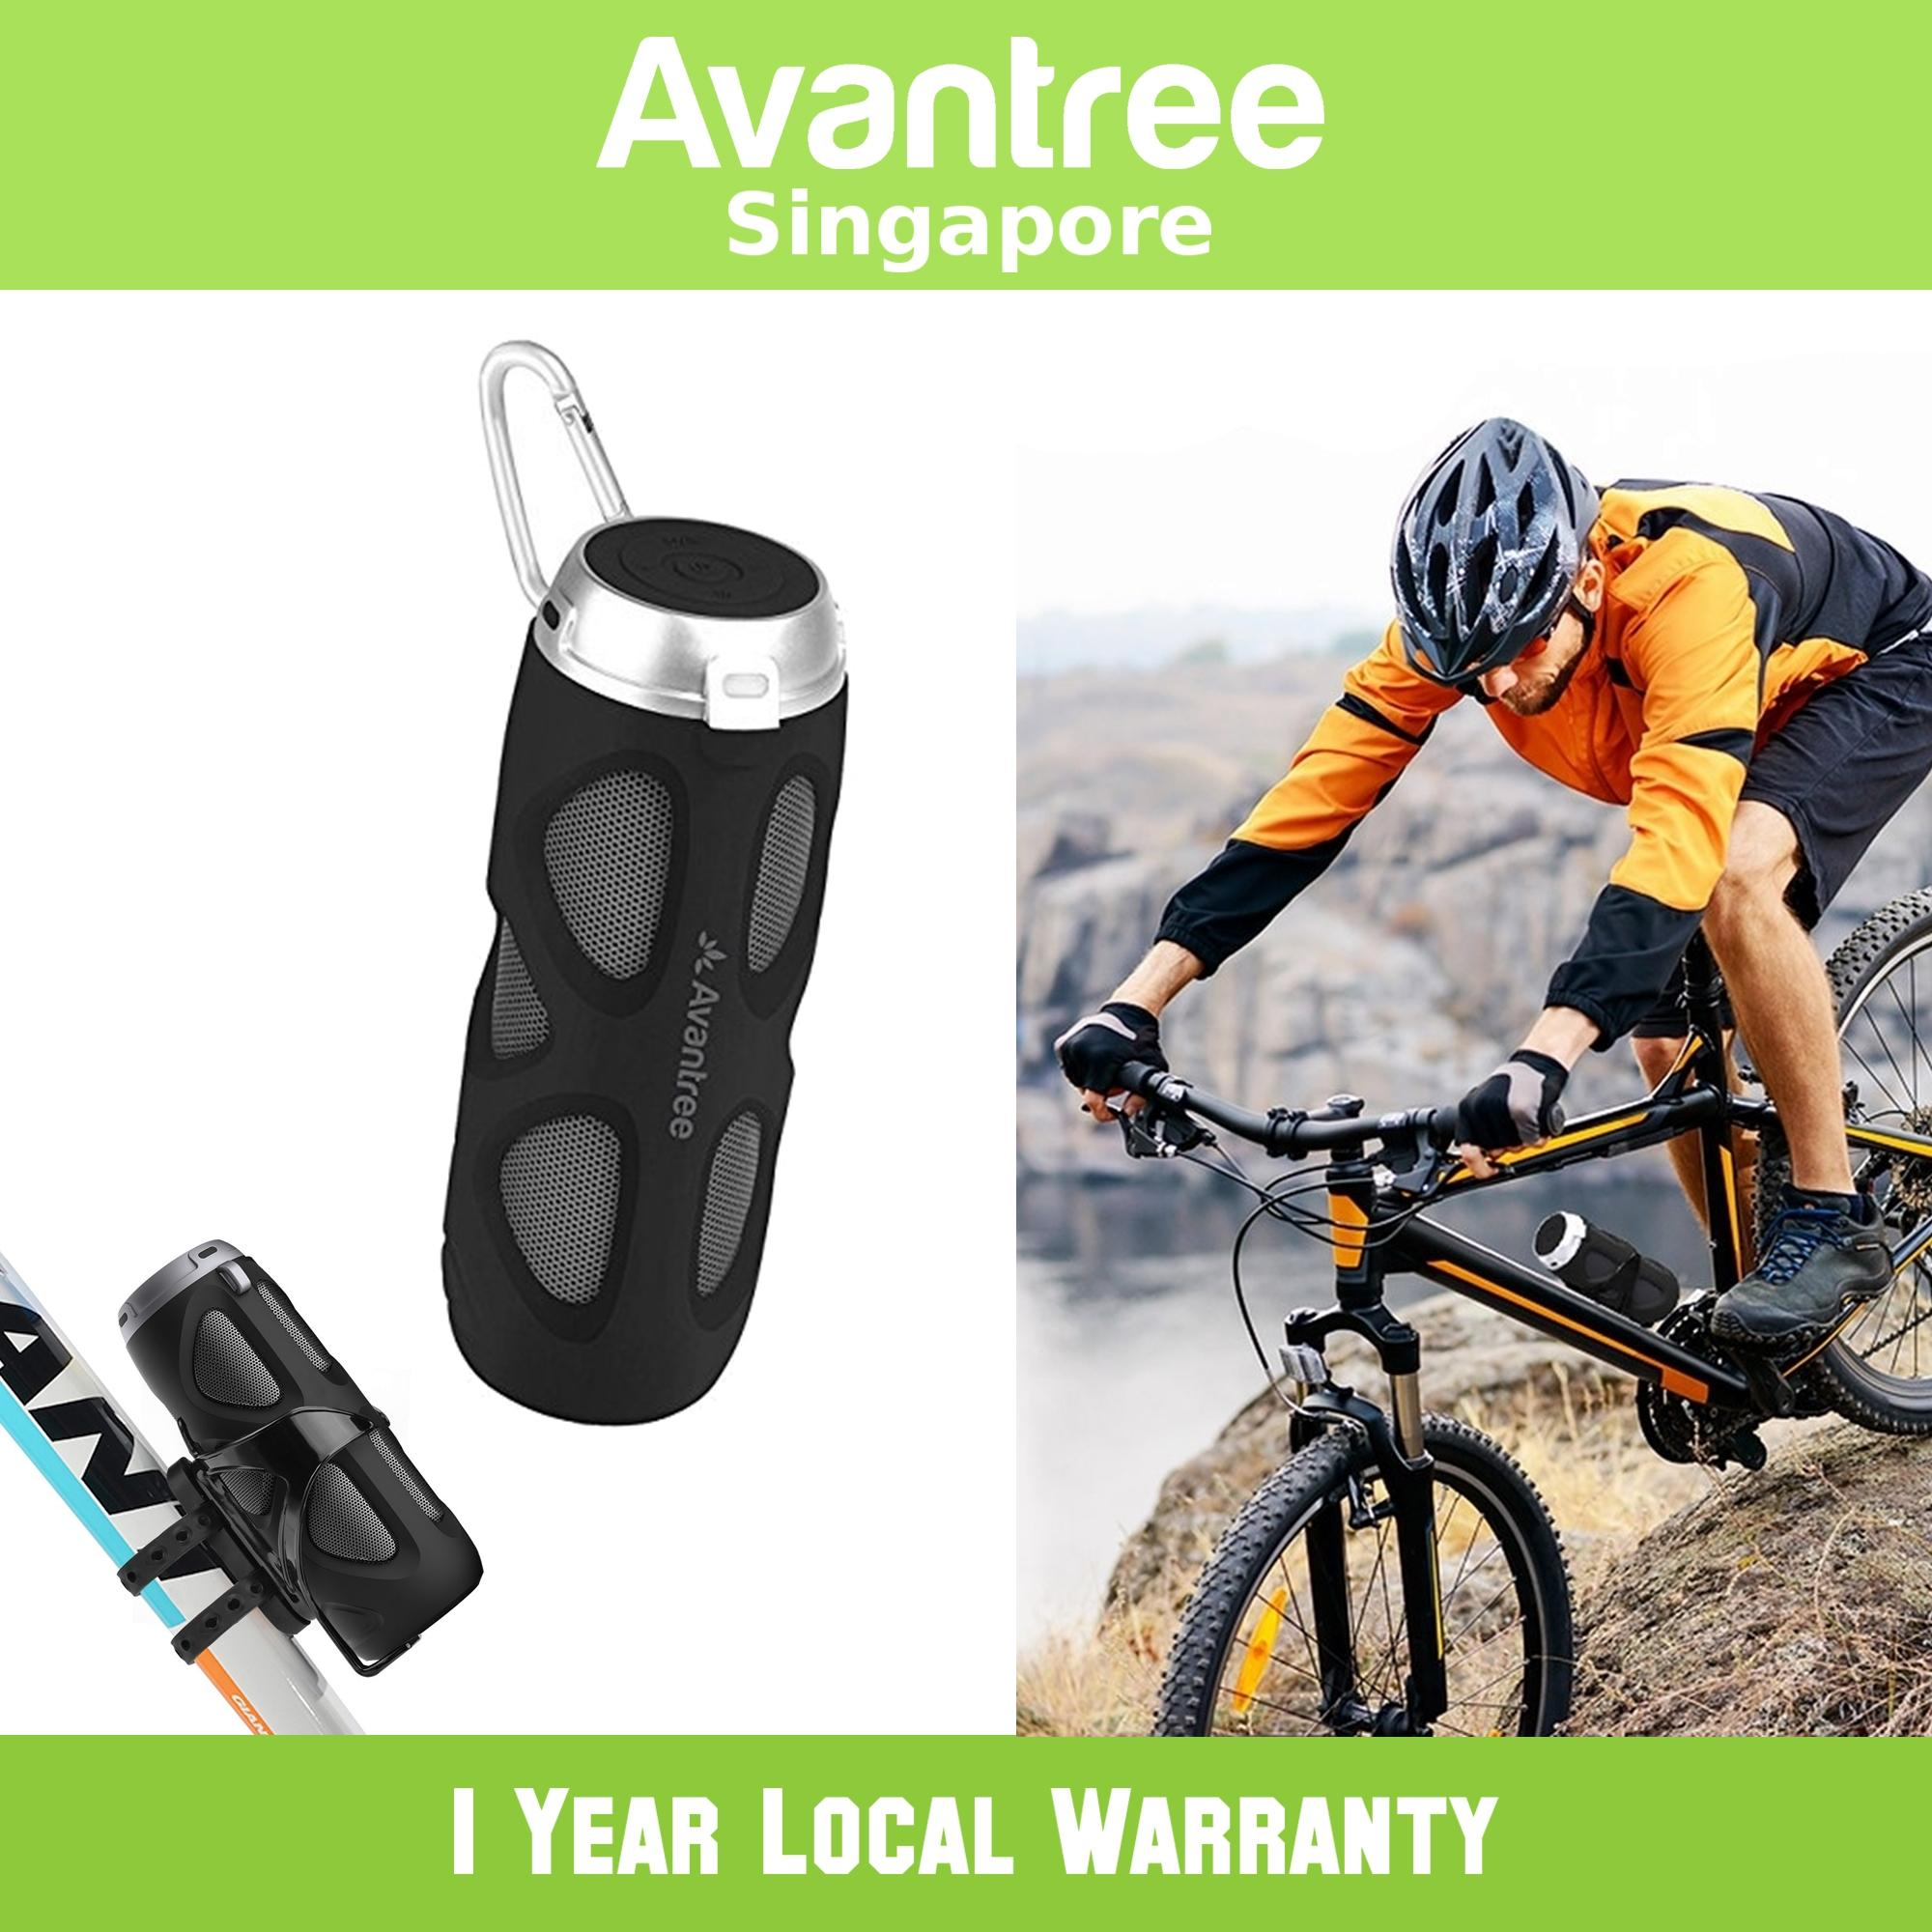 Compare Avantree Water Resistant Wireless Outdoor Bluetooth Speaker For Bicycle E Bike E Scooter